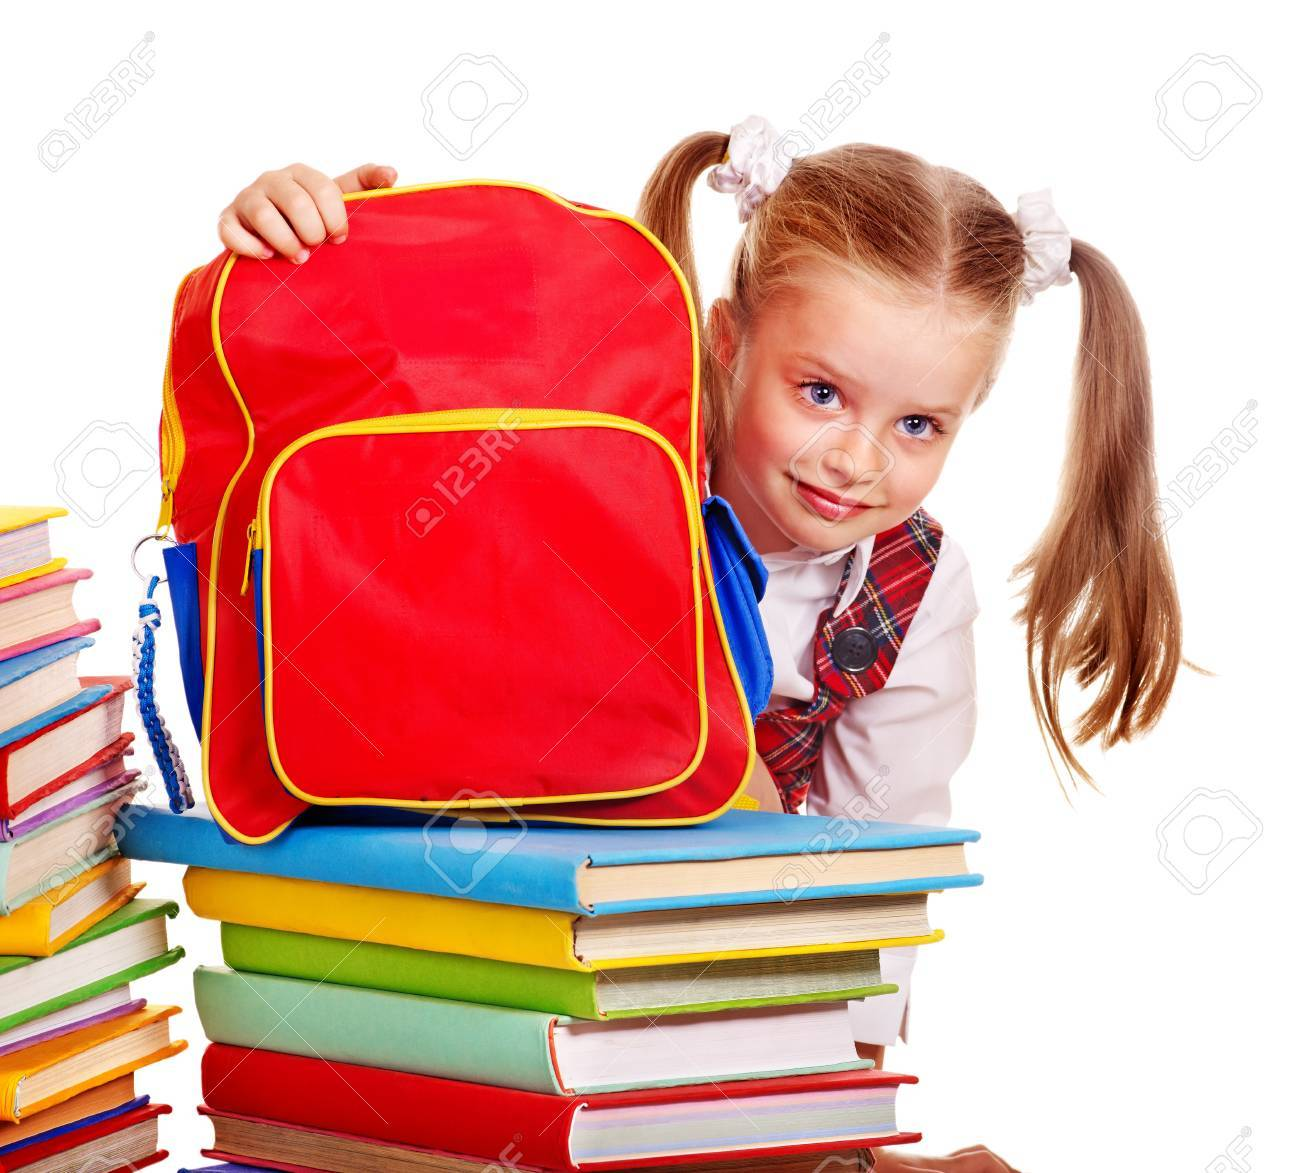 Child with red backpack holding book. Isolated. Stock Photo - 15231874 5495265dcadea